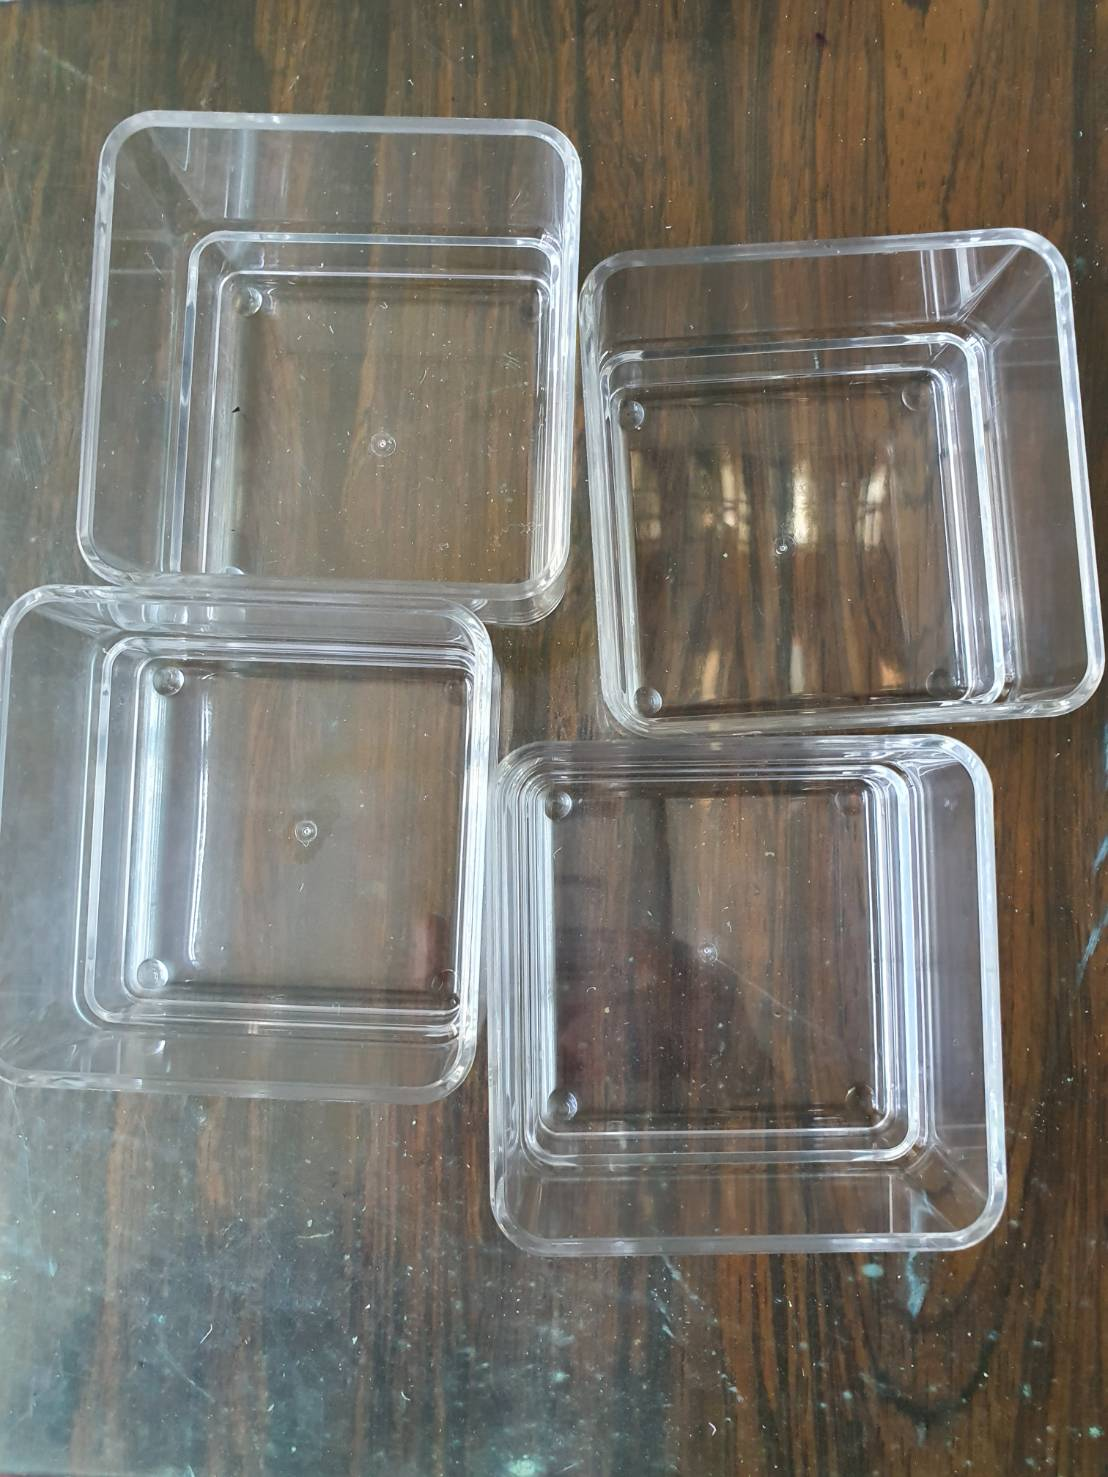 Clear Acrylic cosmetic organizers mold